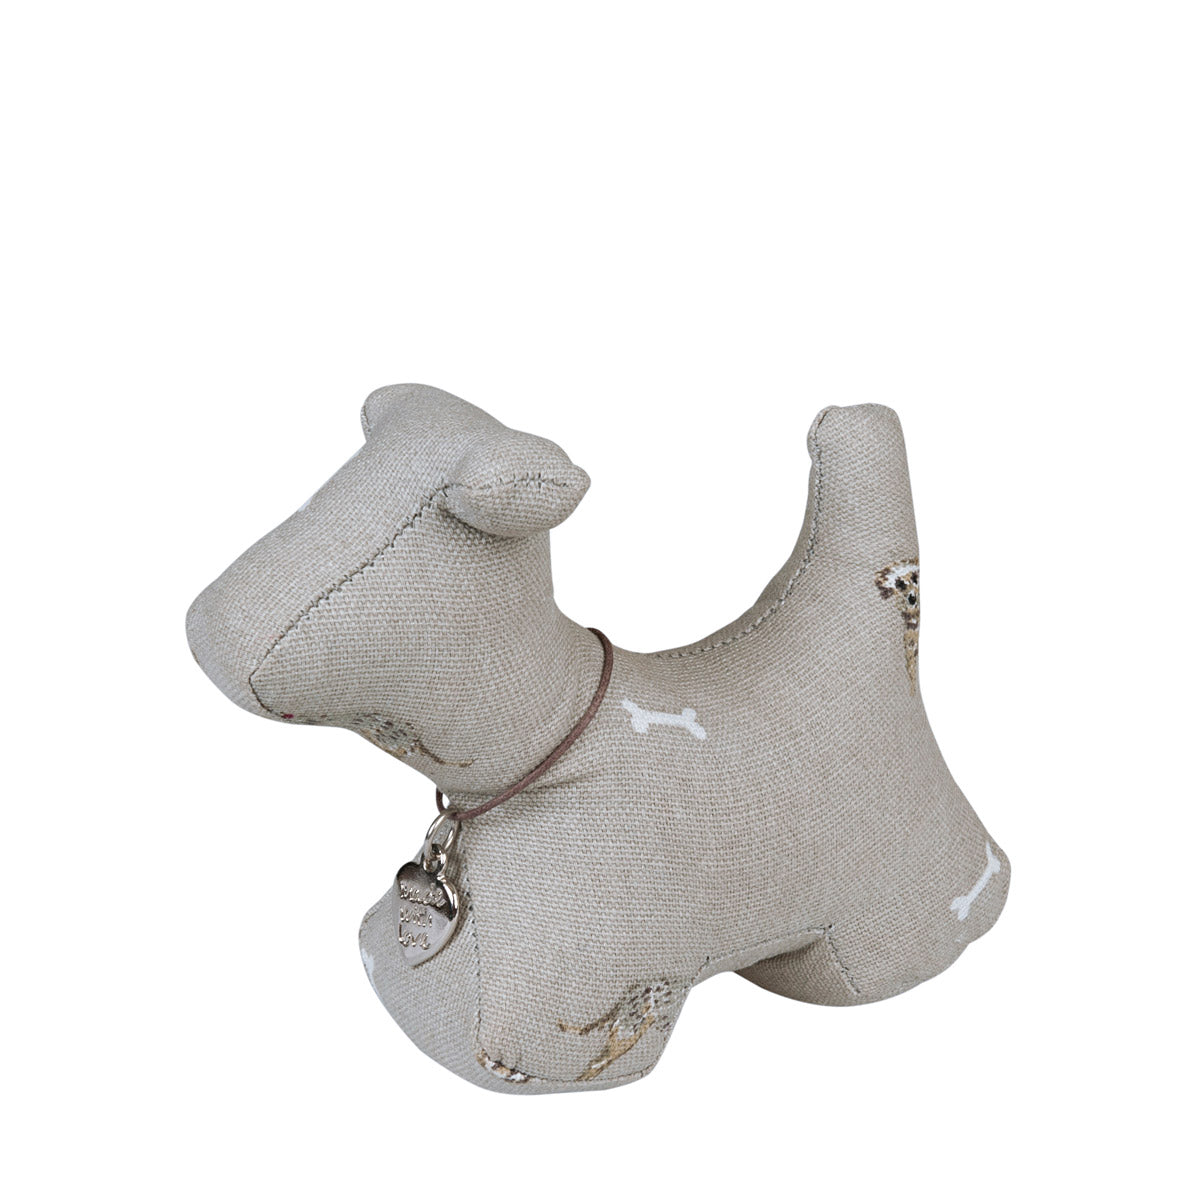 Terrier Desk Buddy Paperweight